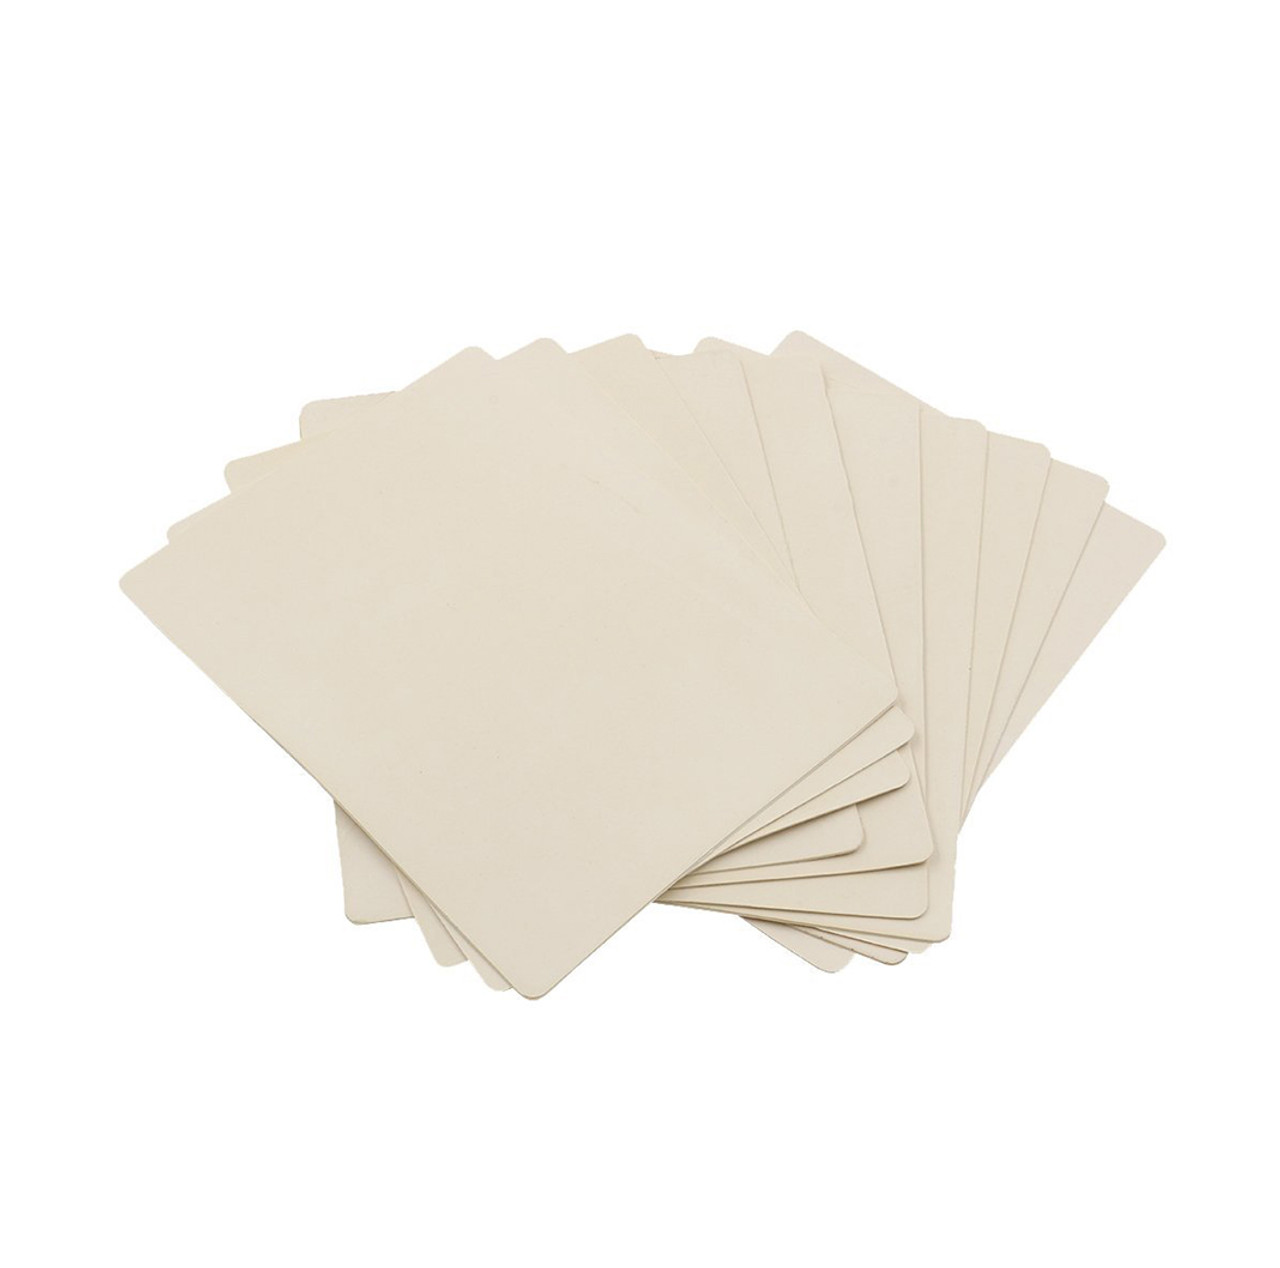 Blank Fake Skin for Tattoo Practice - 195mm x 145mm